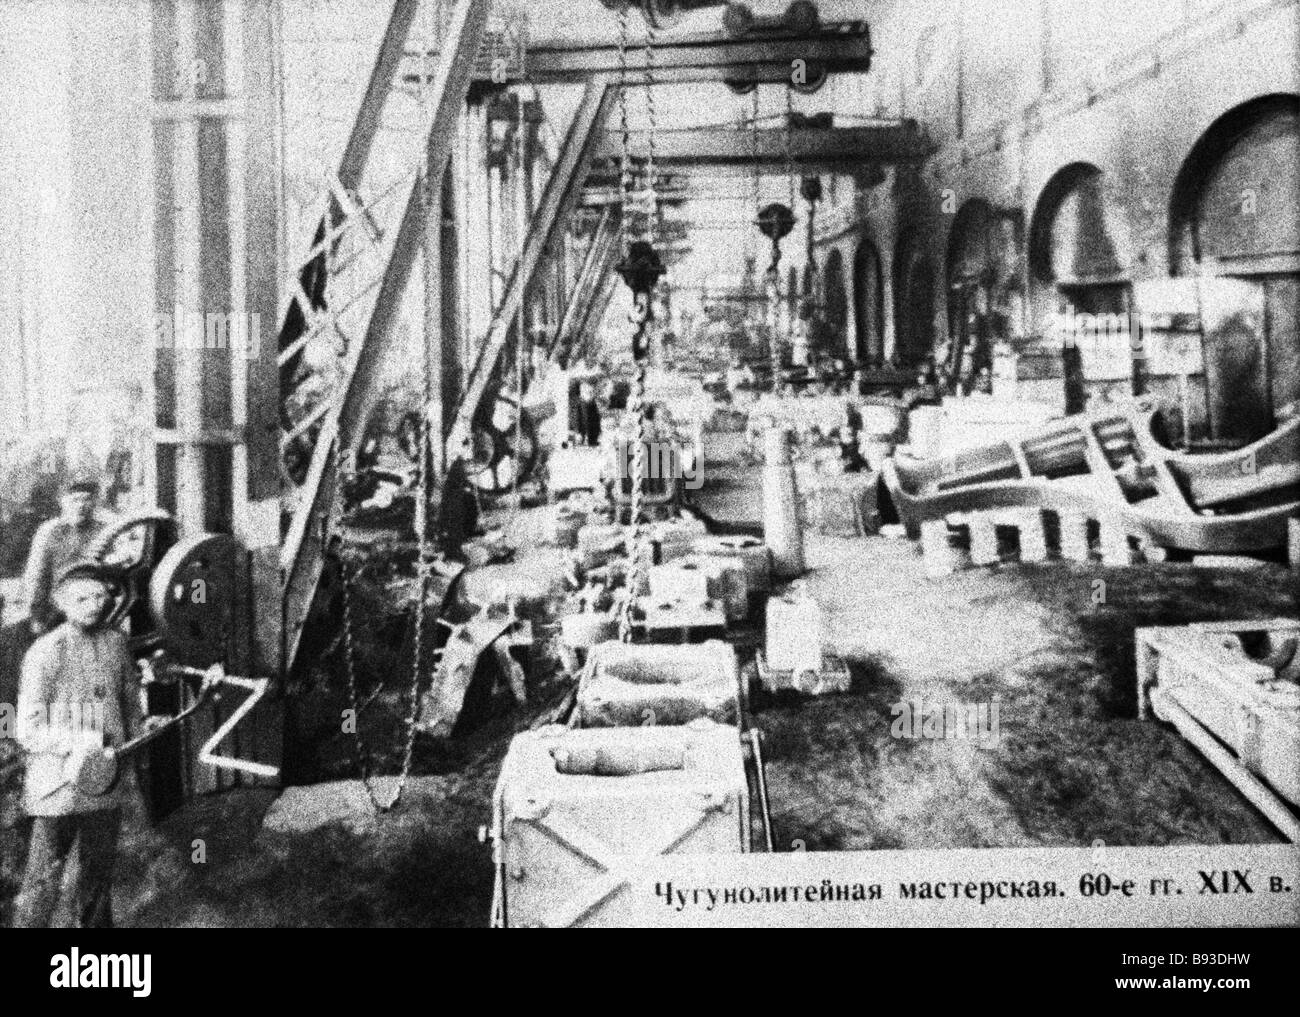 Obukhov Plant workshops in the St Petersburg of the 1860s - Stock Image